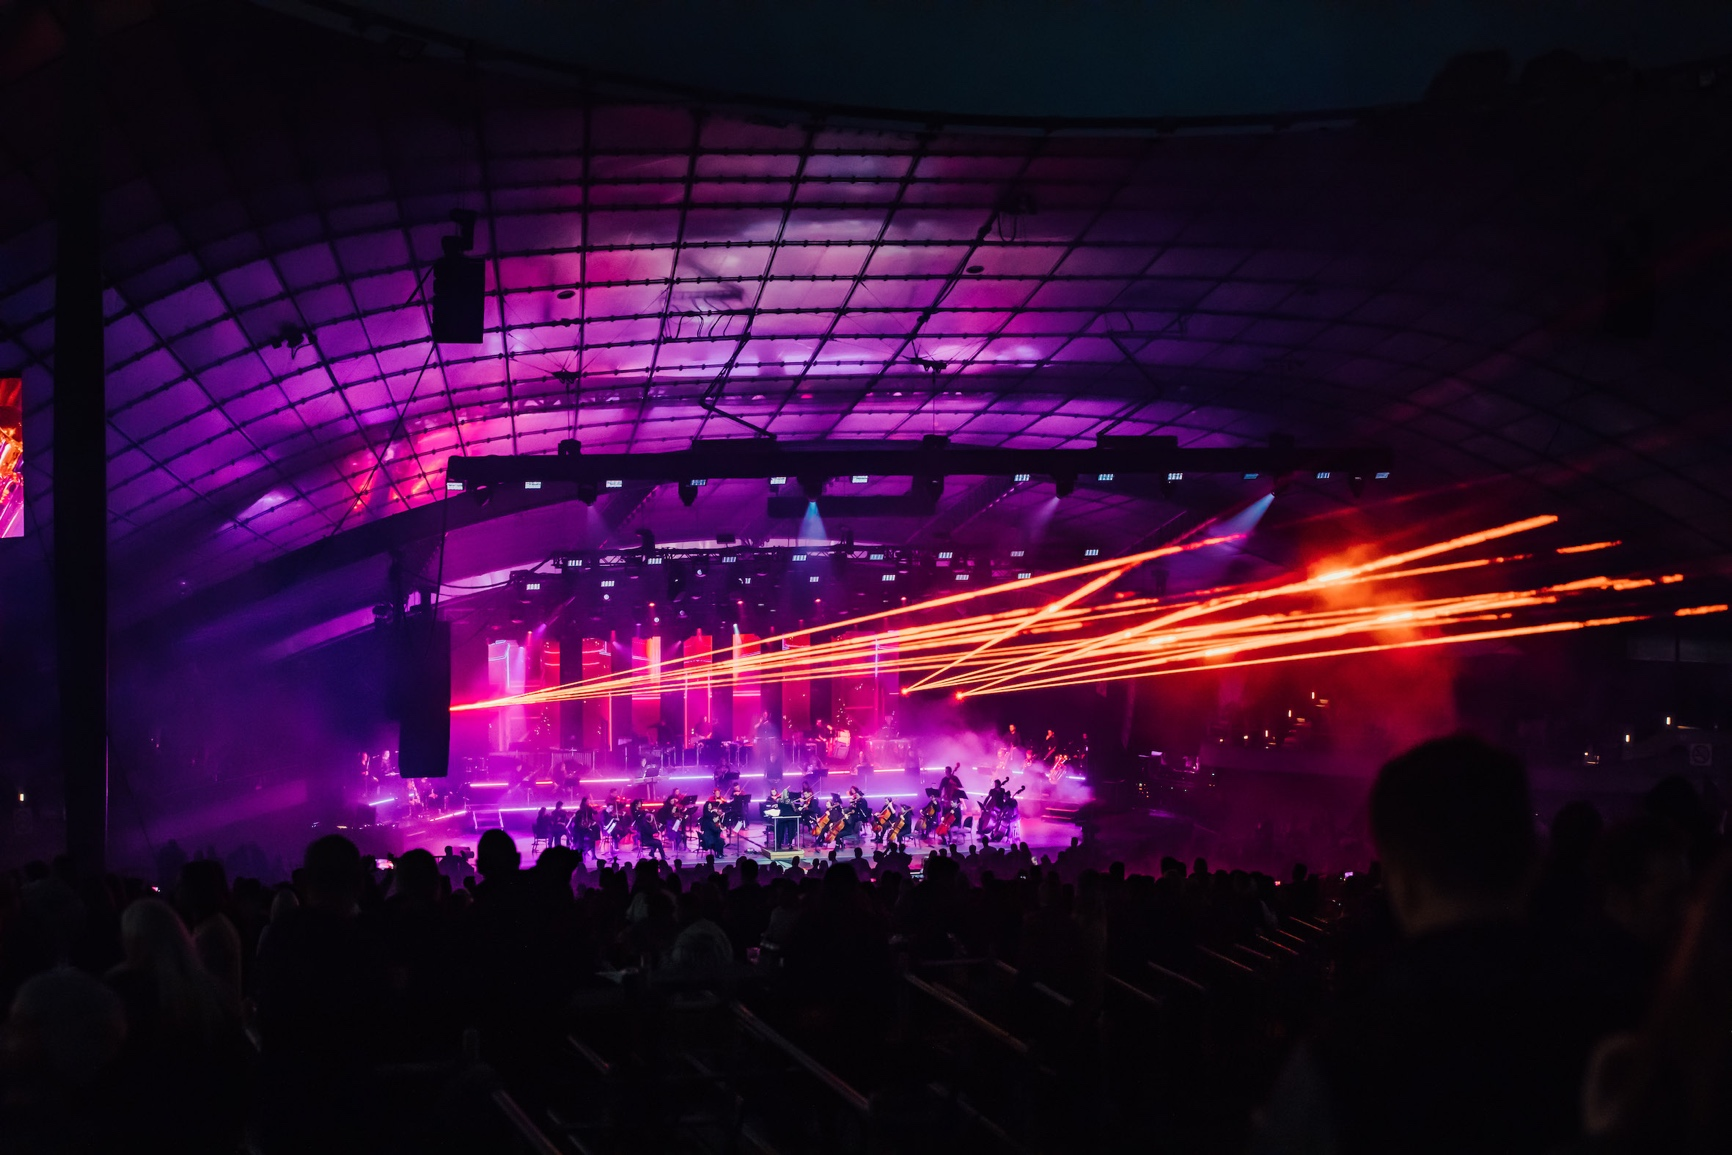 Lasers and big crowds at a music festival